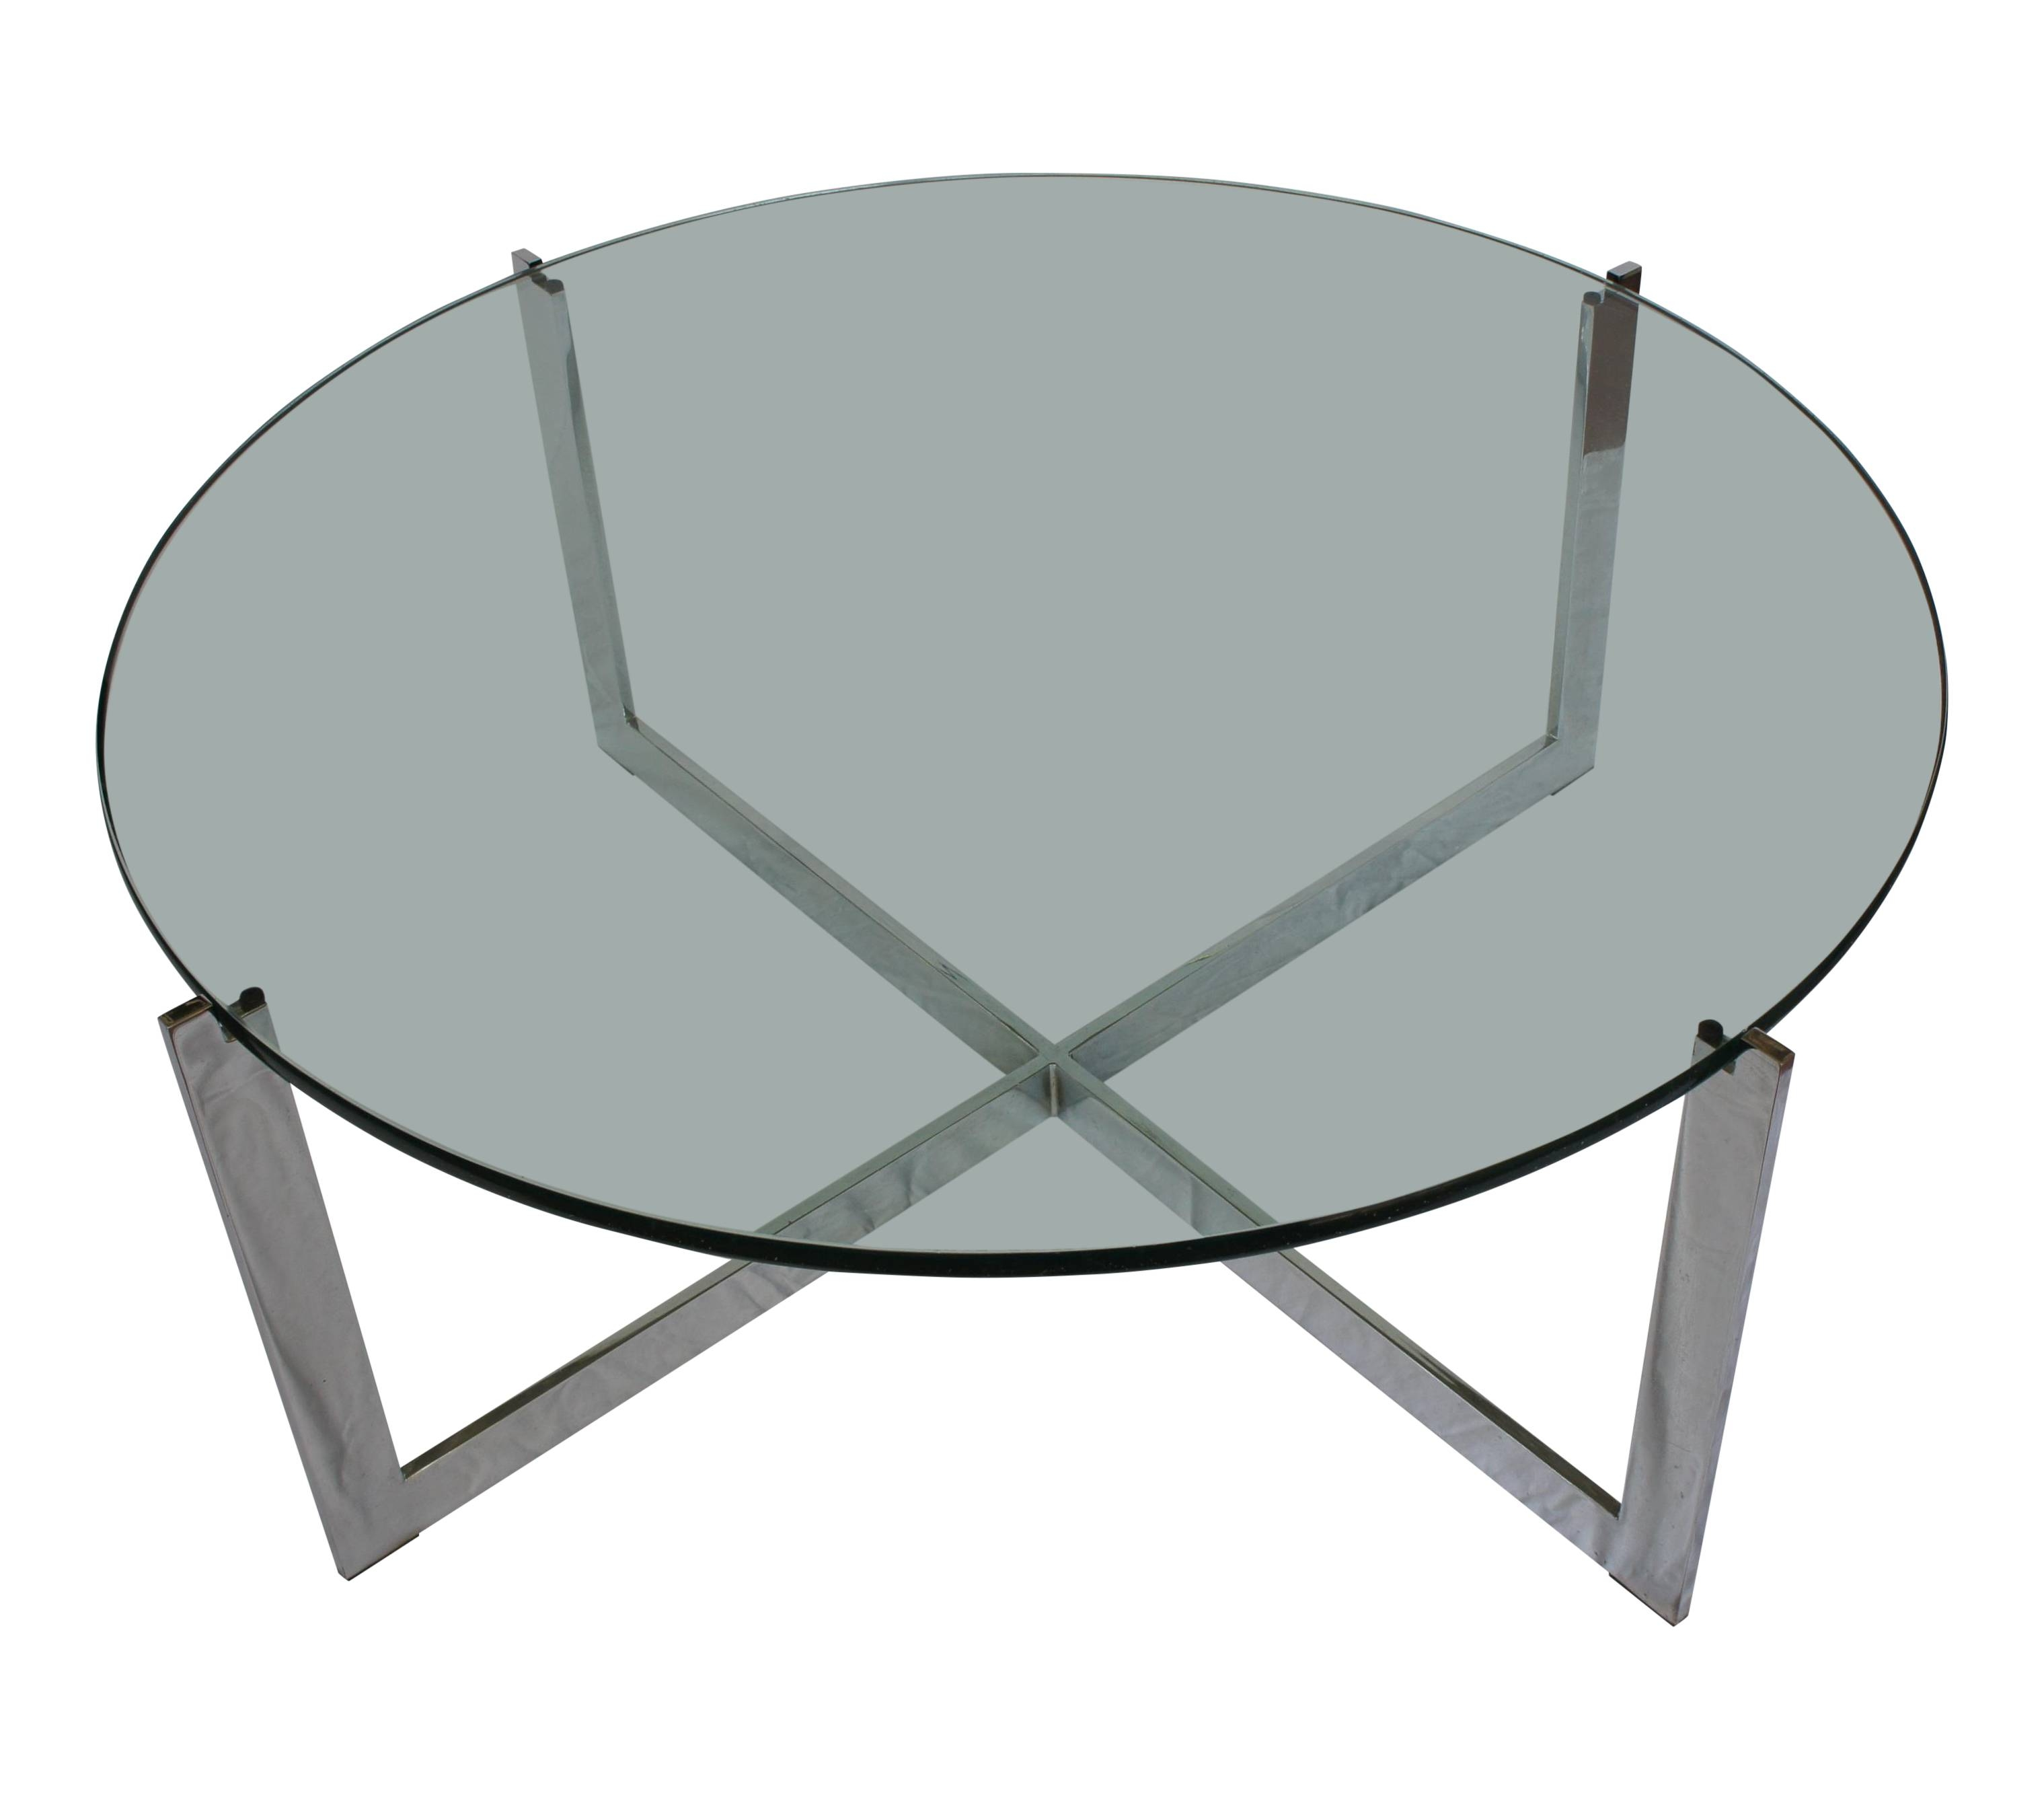 Round Black Glass And Chrome Coffee Table | Coffee Tables Decoration intended for Glass Circular Coffee Tables (Image 22 of 31)